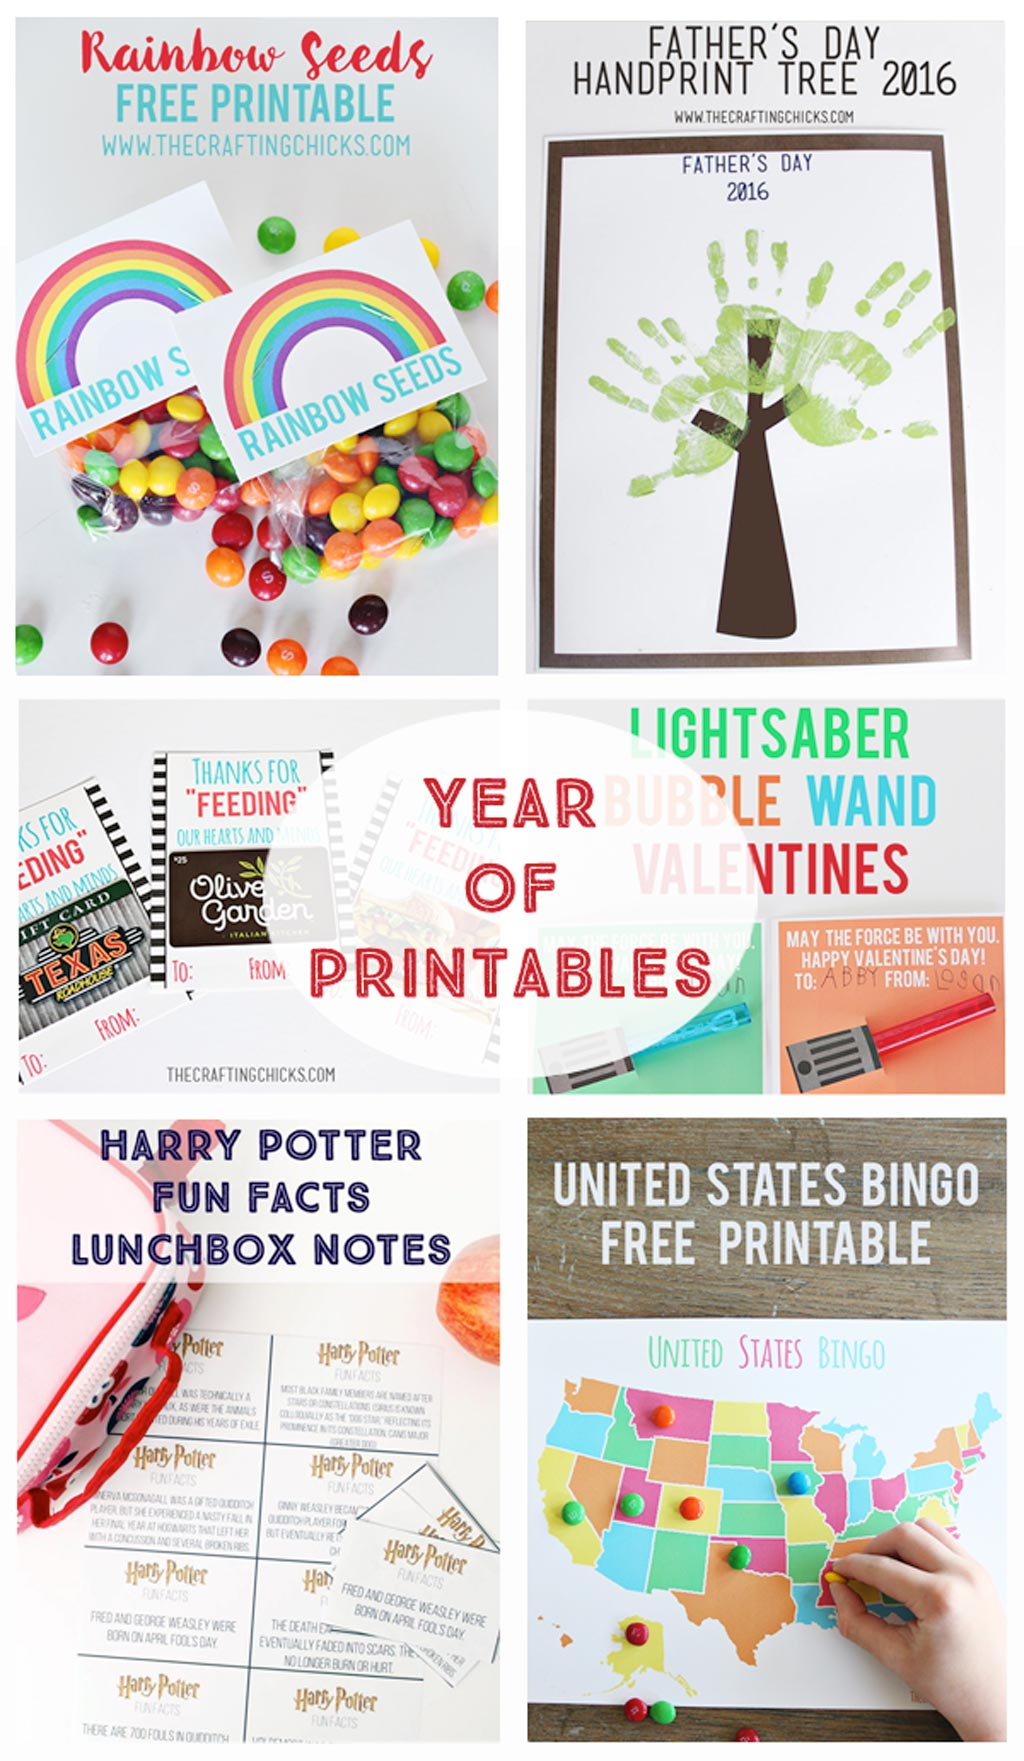 http://thecraftingchicks.com/wp-content/uploads/2016/12/Year-of-Printables.jpg